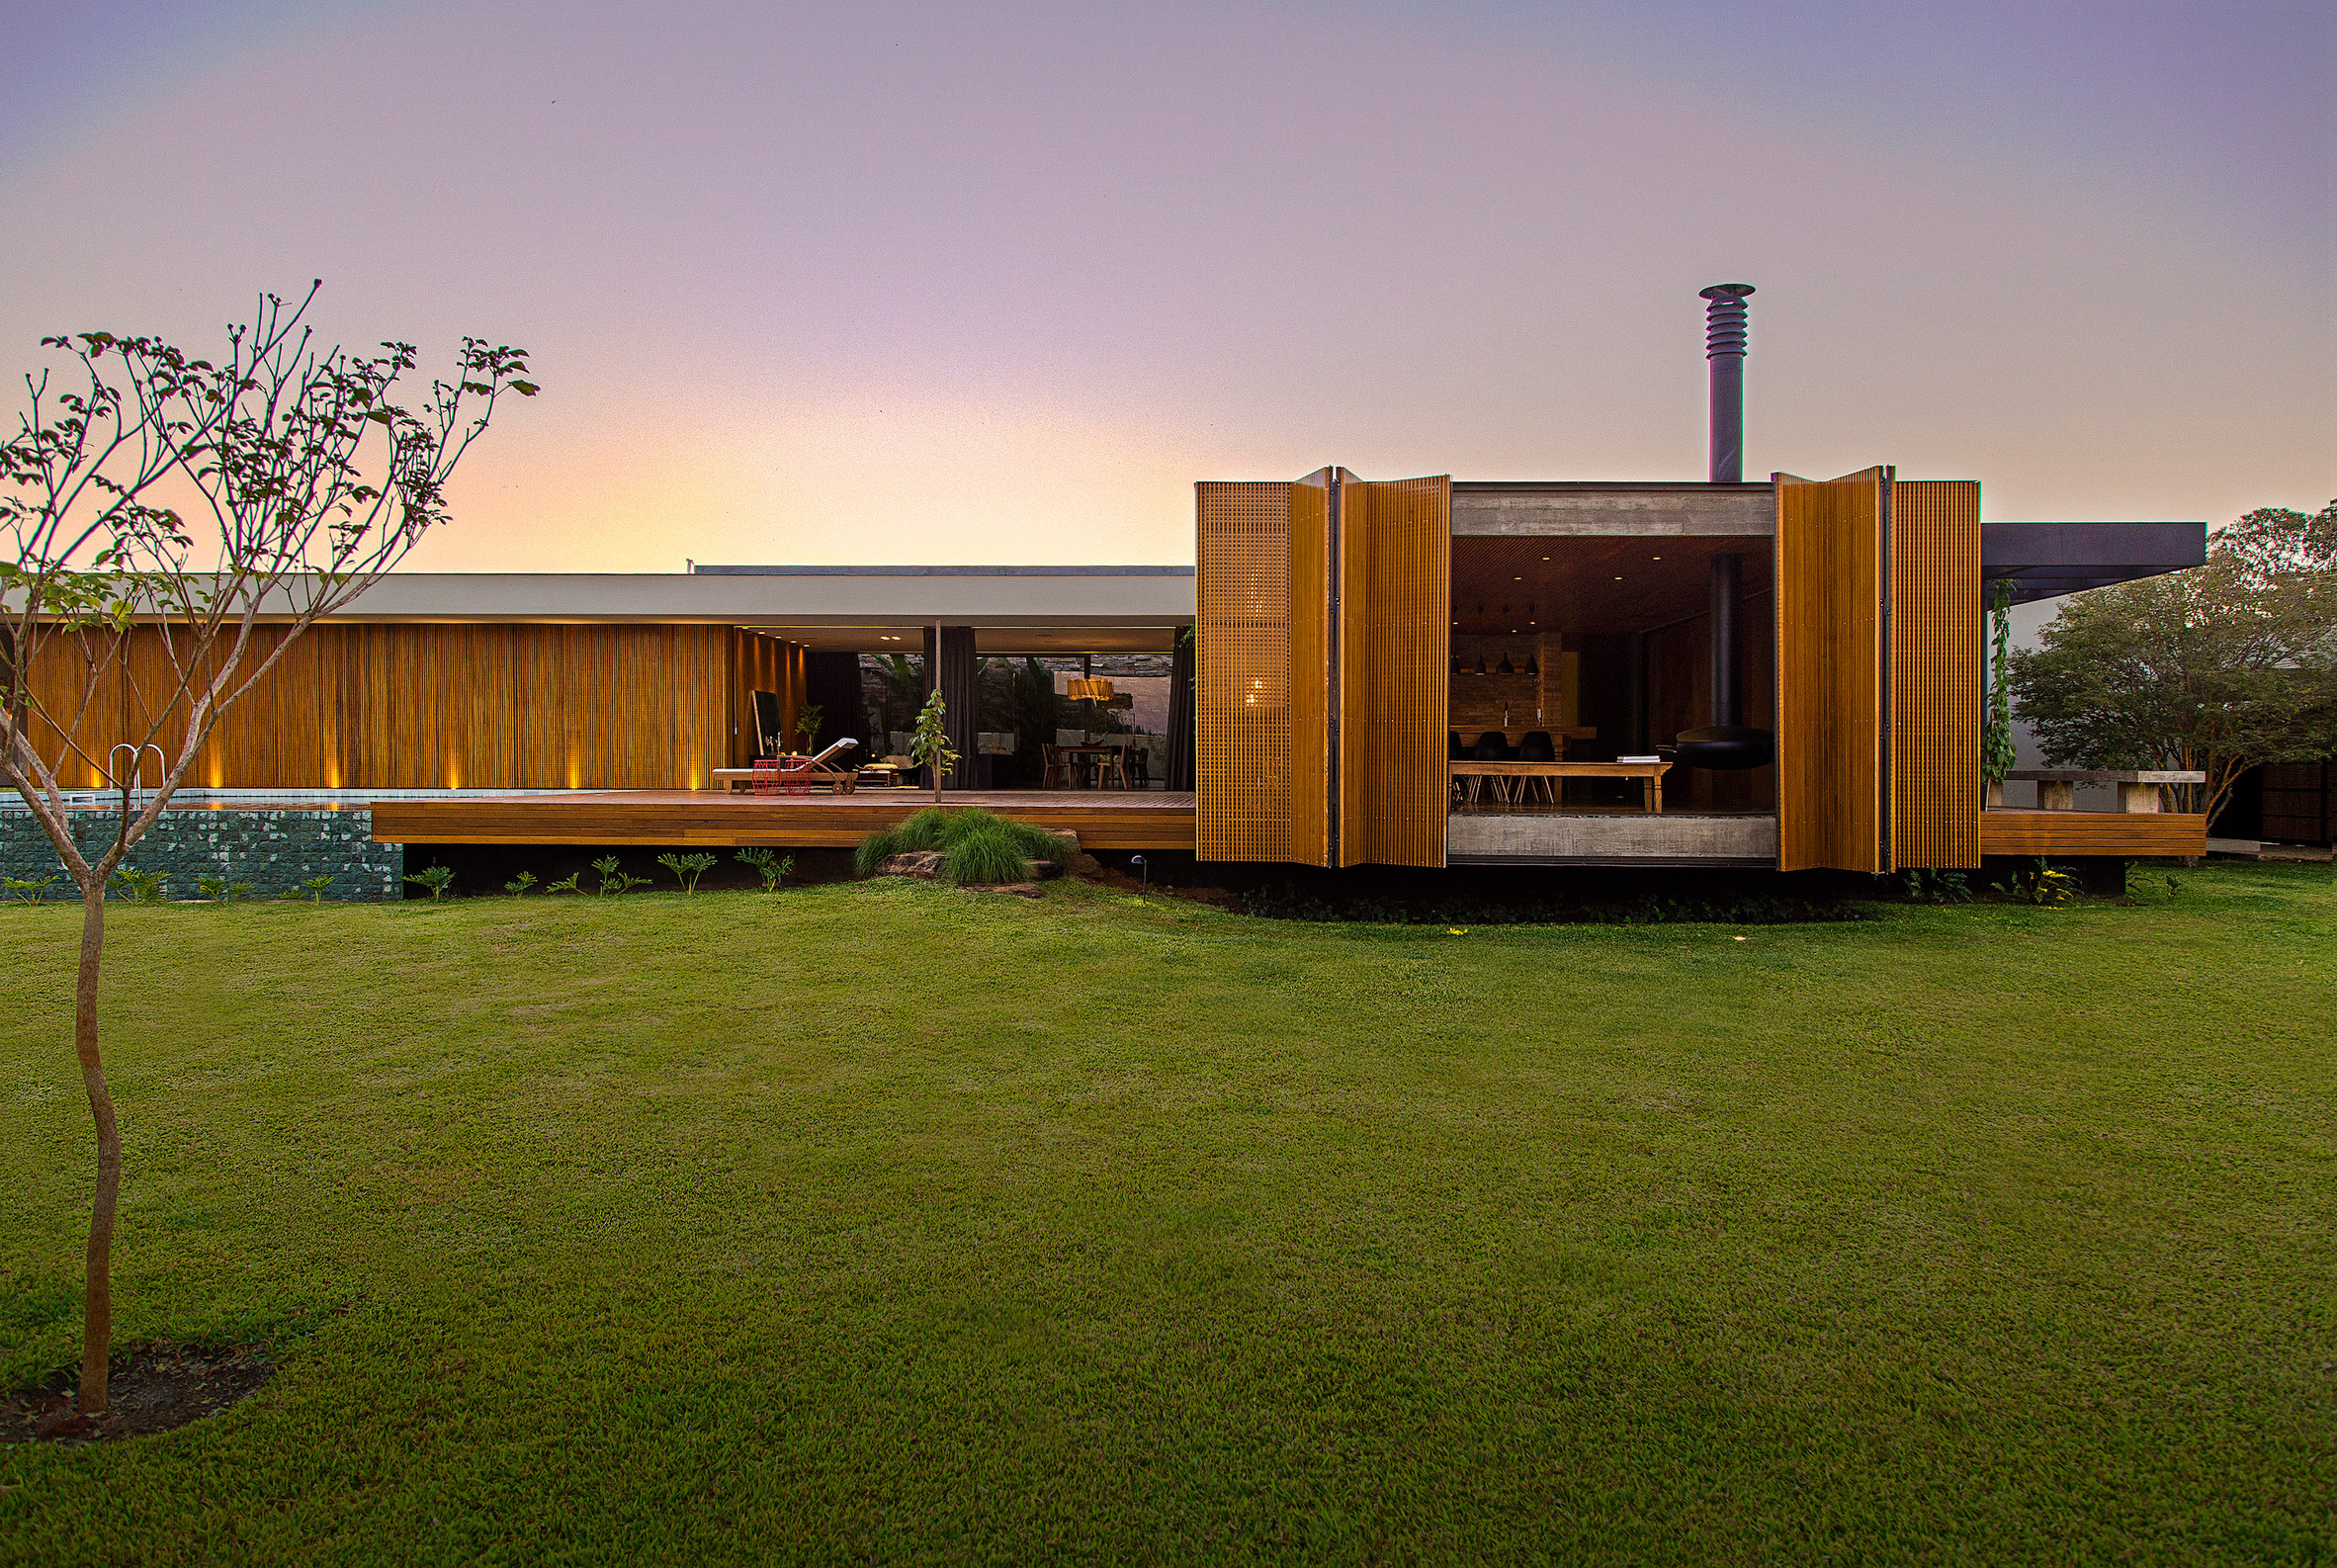 MF+ Arquitetos creates modernist-inspired house with walled garden in Brazil